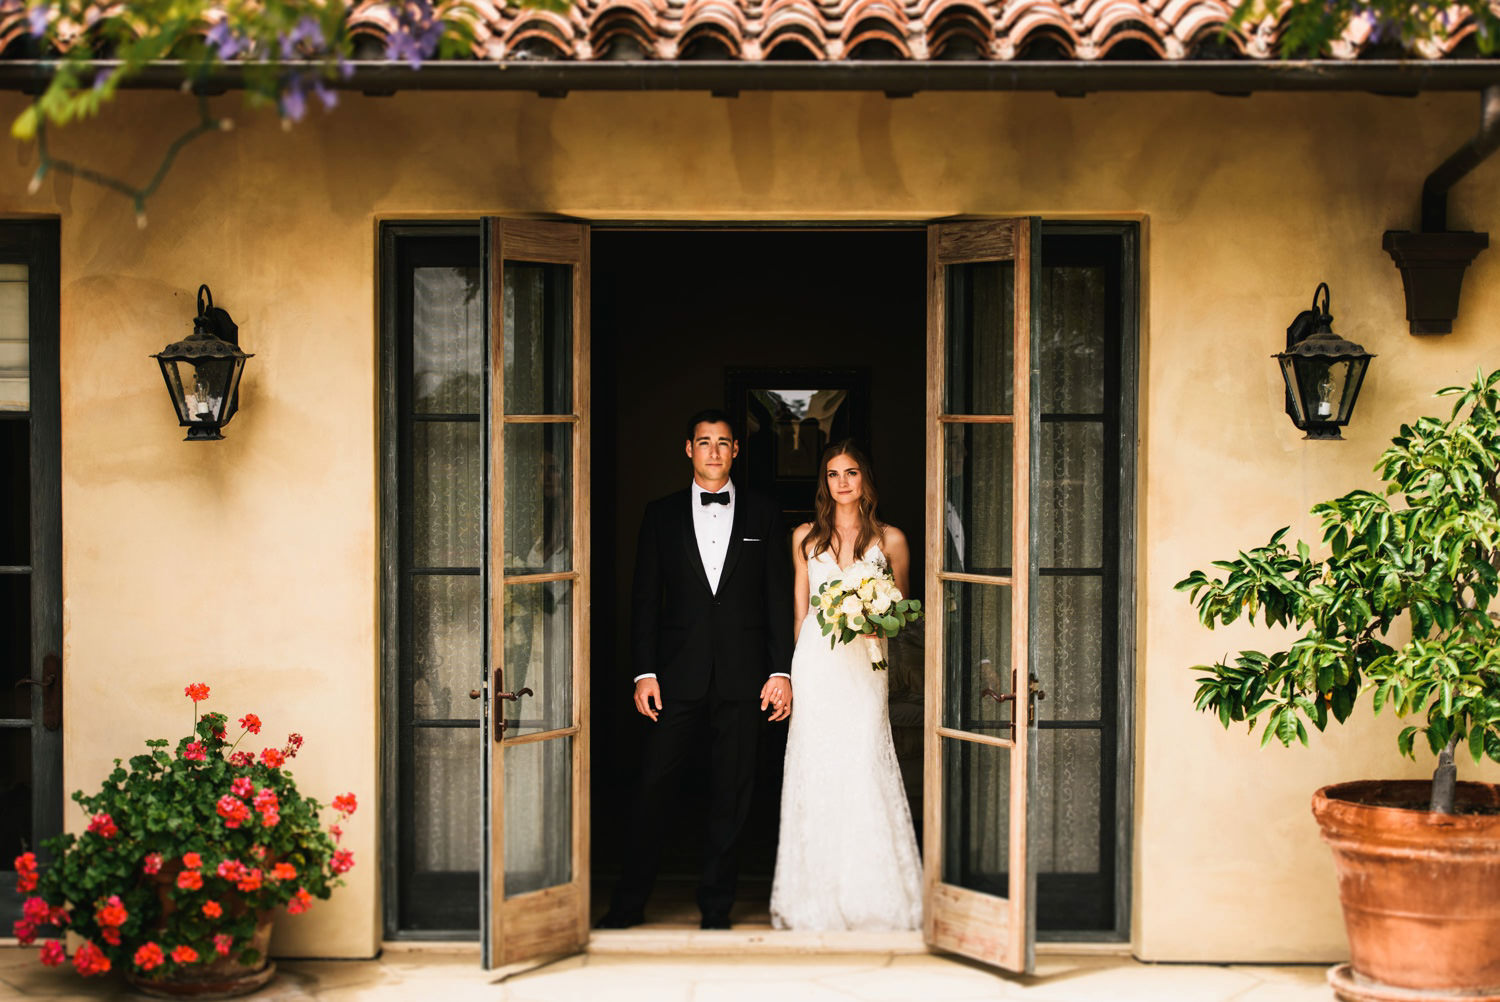 montecito home wedding bride and groom portrait - montecito wedding photography